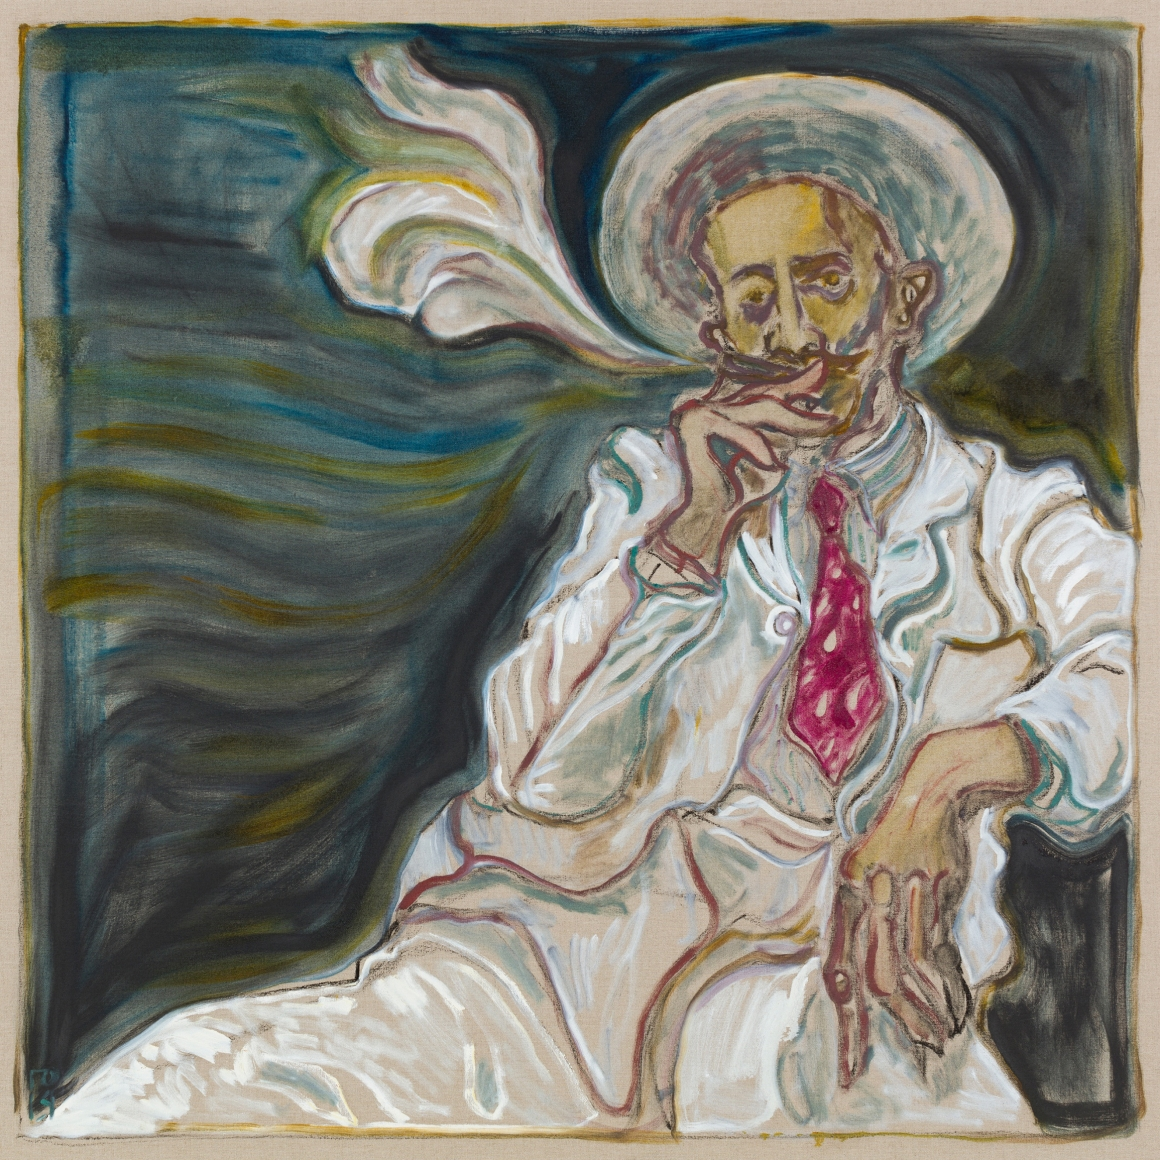 BILLY CHILDISH, smoker, 2019